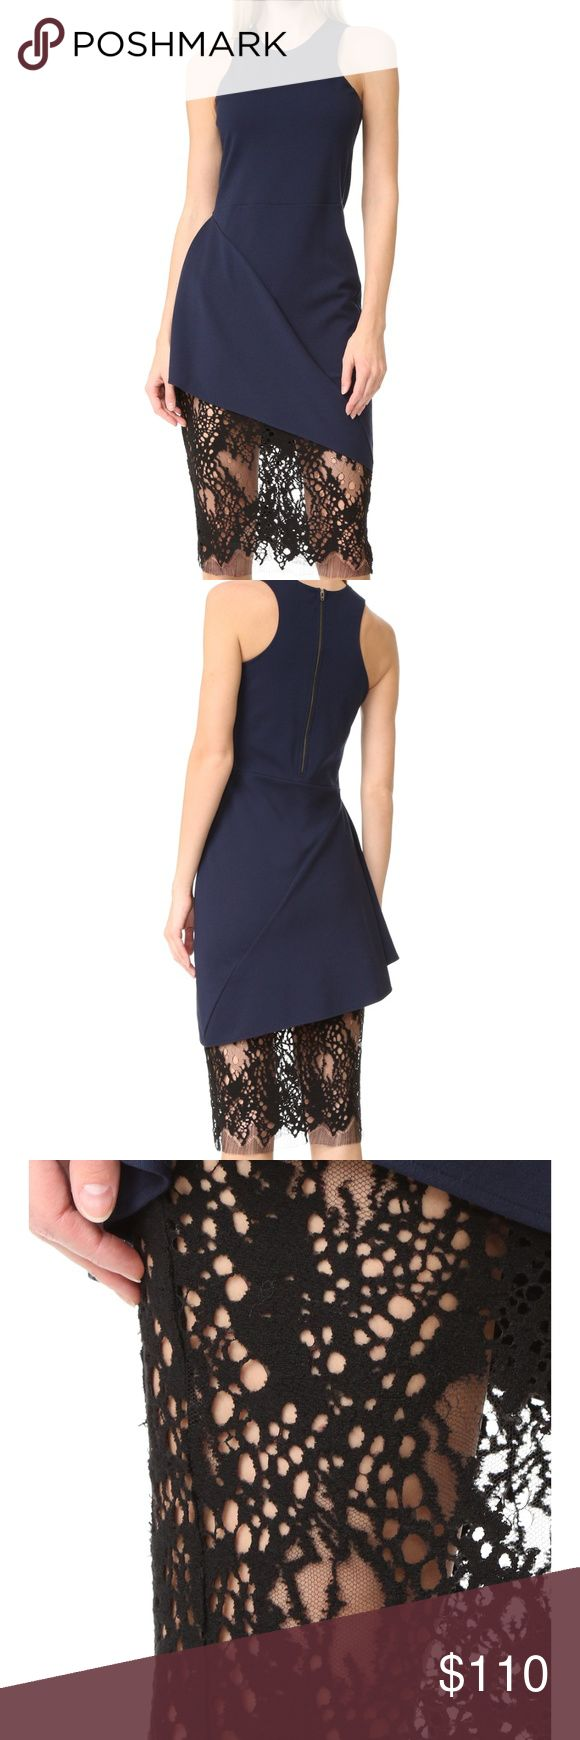 "Michelle Mason Navy/Black Racer Lace Hem Dress MICHELLE MASON RACER DRESS W/ LACE SKIRT   Small   DETAILS A dark two-tone Michelle Mason cocktail dress, crafted in navy ponte jersey and trimmed with sexy, sheer black lace along the hem. Draped detailing at one hip. High neckline and racer back. Sleeveless. Exposed back zip. Lined.  Fabric: Ponte jersey / lace. Shell: 62% rayon/30% nylon/8% spandex. Trim: 81% wool/19% nylon. Lining: 80% polyamide/20% elastane.  Bust: 30"" Waist: 27"" Hips: 32""…"